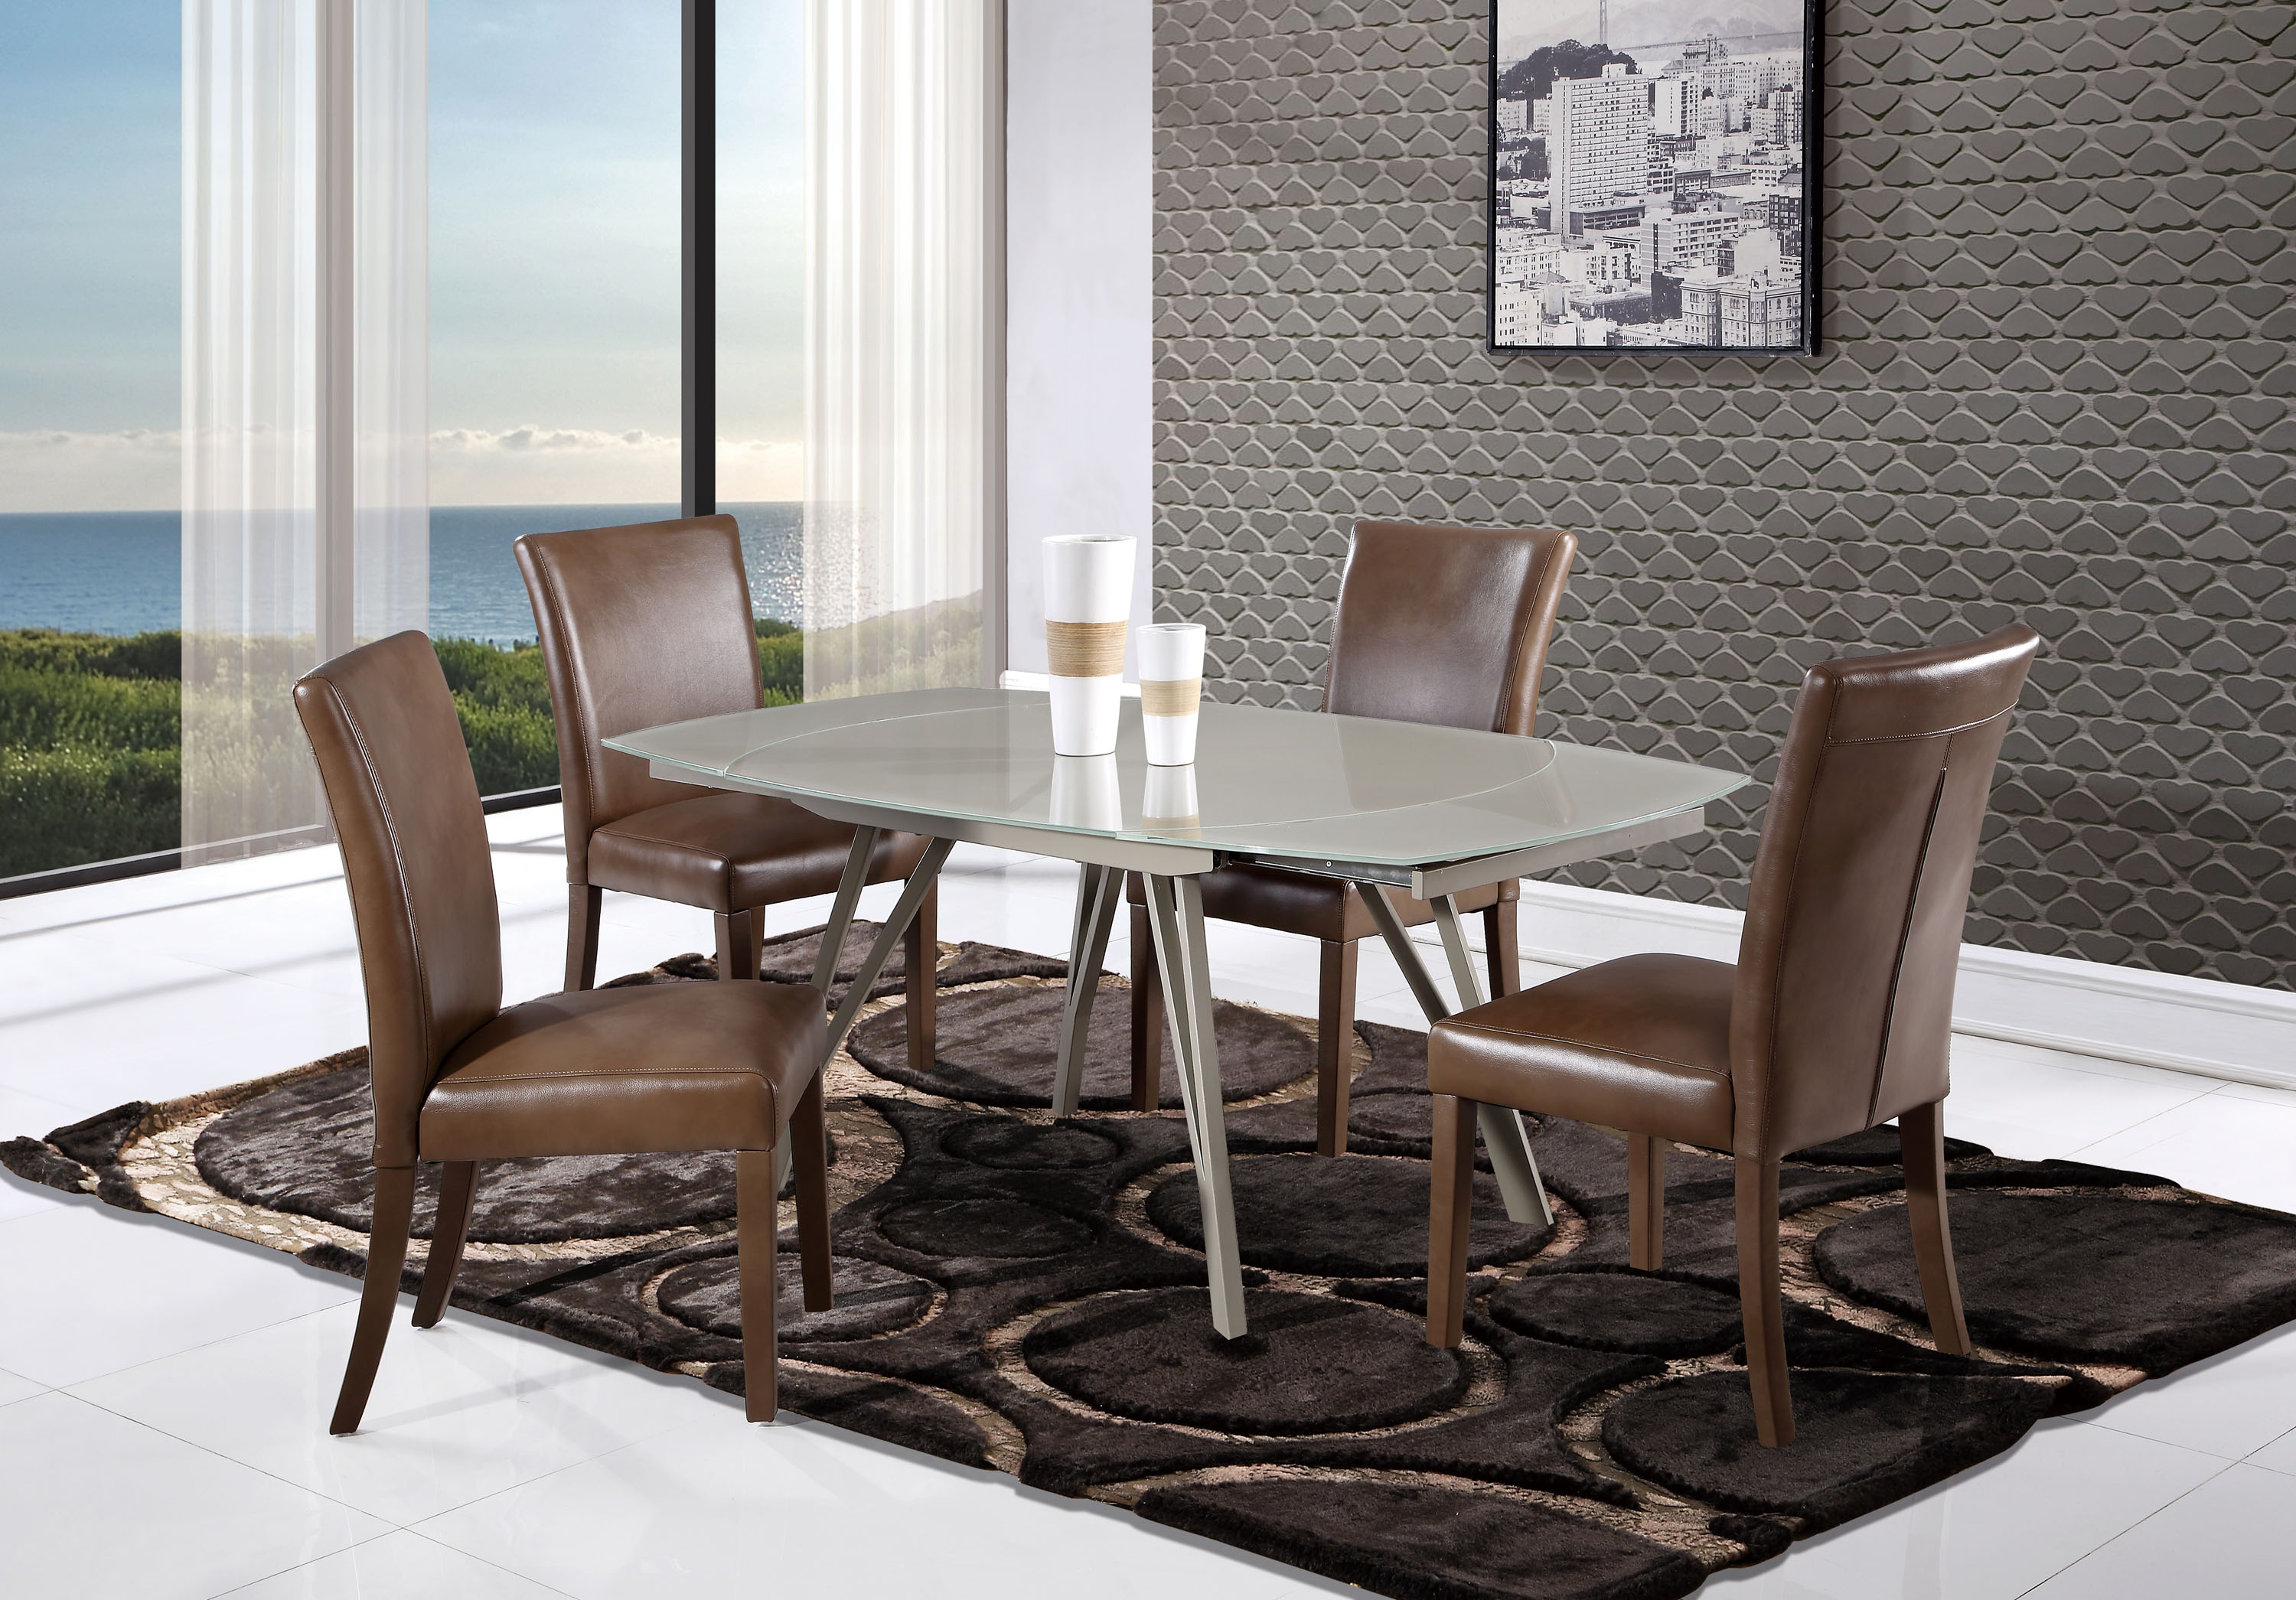 Sensational Modern Champagne Glass Swivel Extension Dining Table With Brown Side Chairs Andrewgaddart Wooden Chair Designs For Living Room Andrewgaddartcom